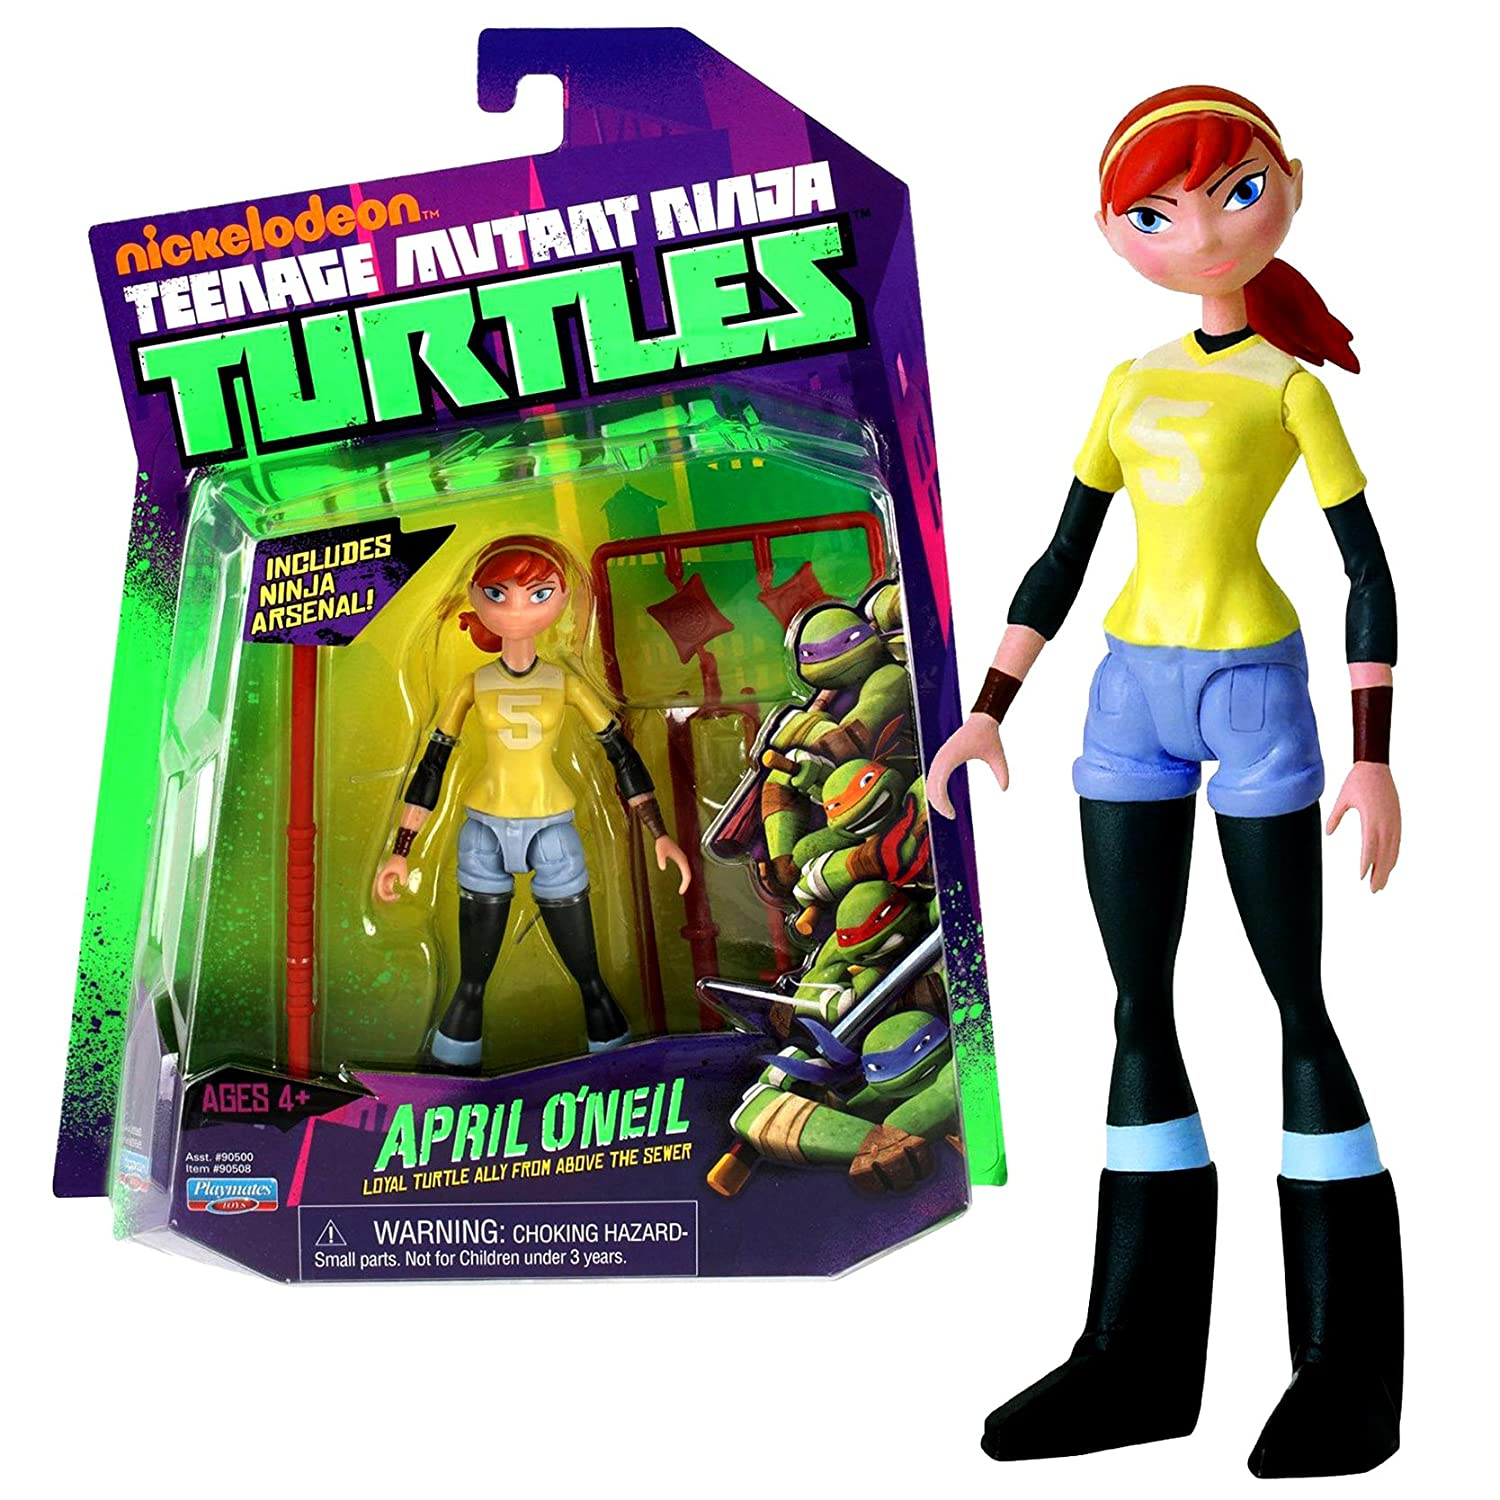 Playmates Year 2012 Nickelodeon Teenage Mutant Ninja Turtles 5 Inch Tall Action Figure - Loyal Turtle Ally from Above the Sewer APRIL ONEIL with Bo ...